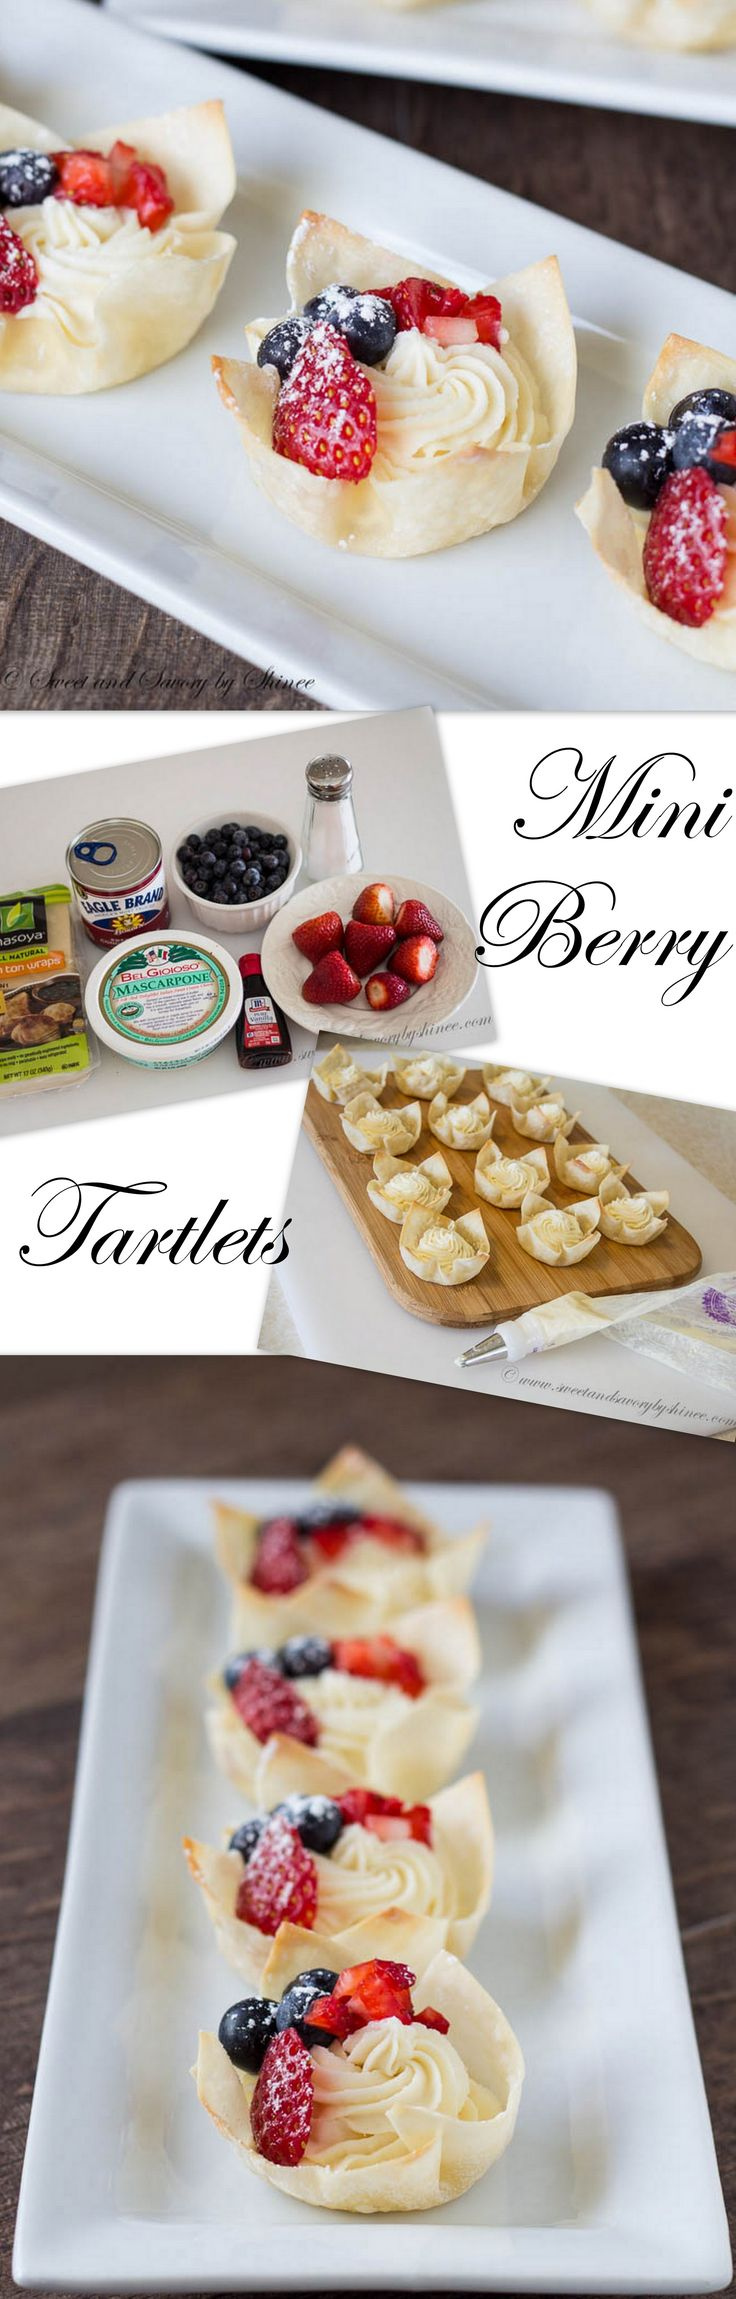 These crunchy, creamy, juicy mini berry tartlets are super easy to make. No pastry dough needed! ~Sweet and Savory by Shinee